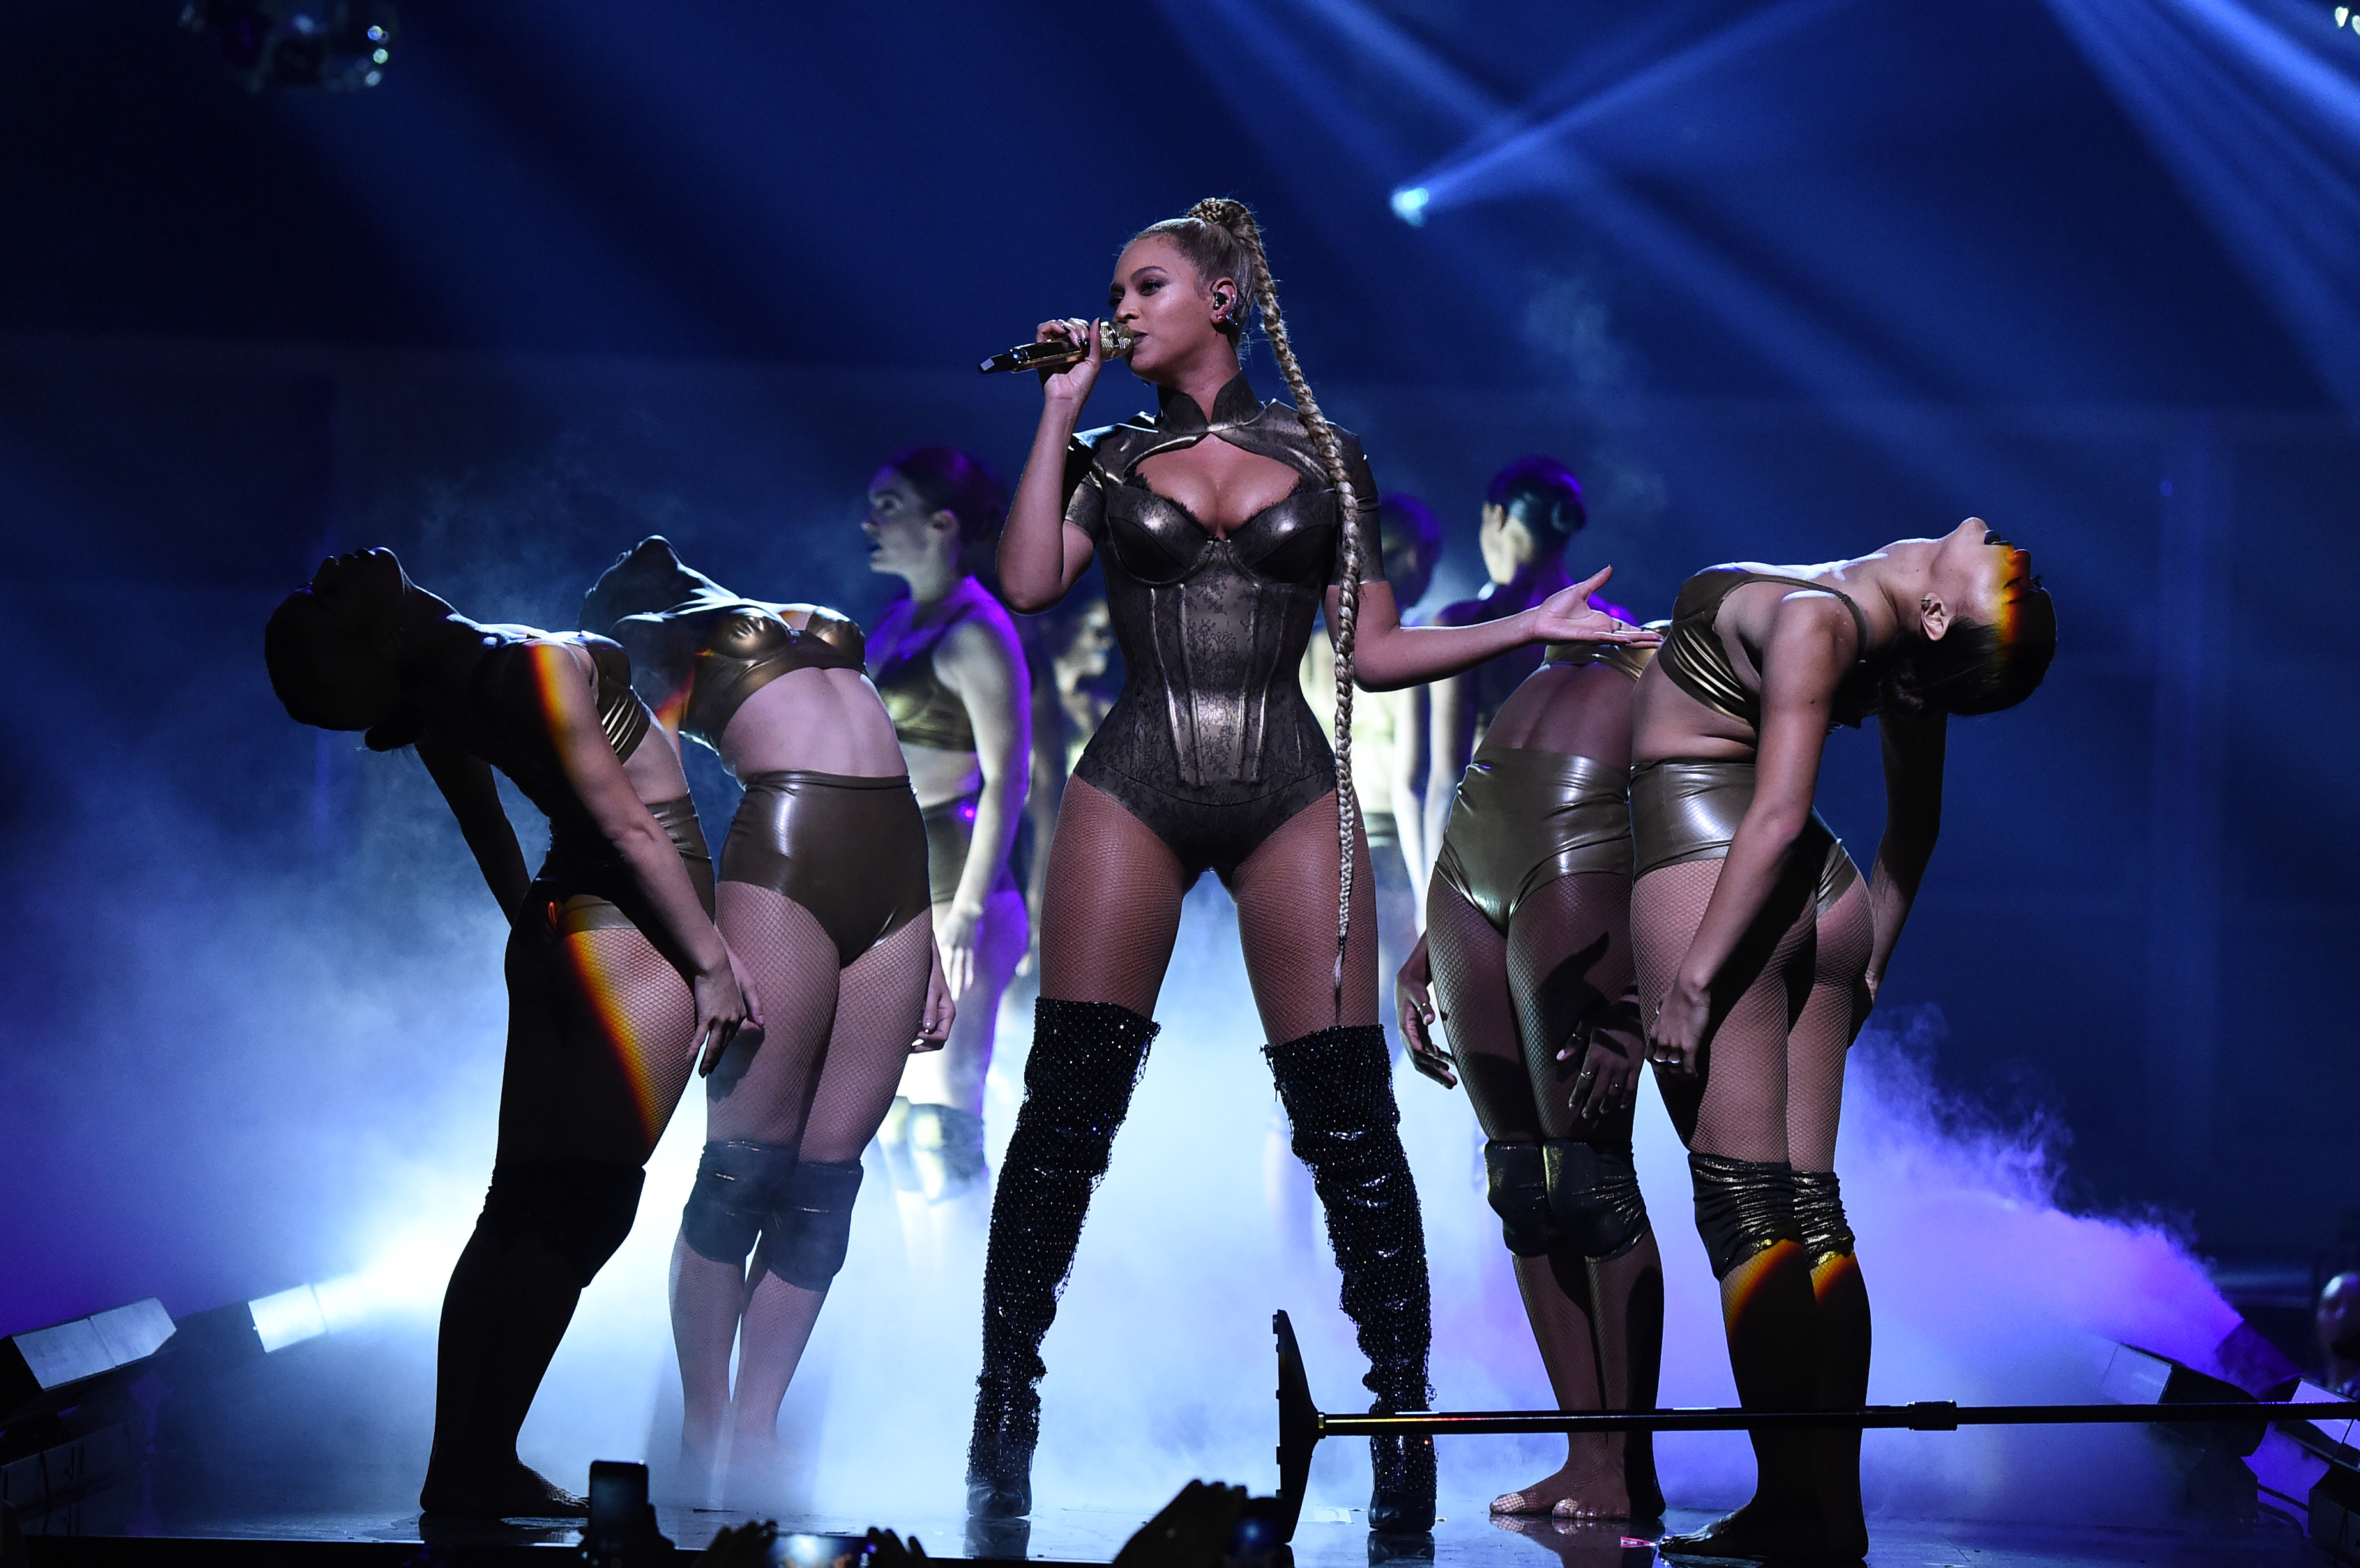 Wait, is Beyonce performing at the Grammys or not? She's being very mysterious about it